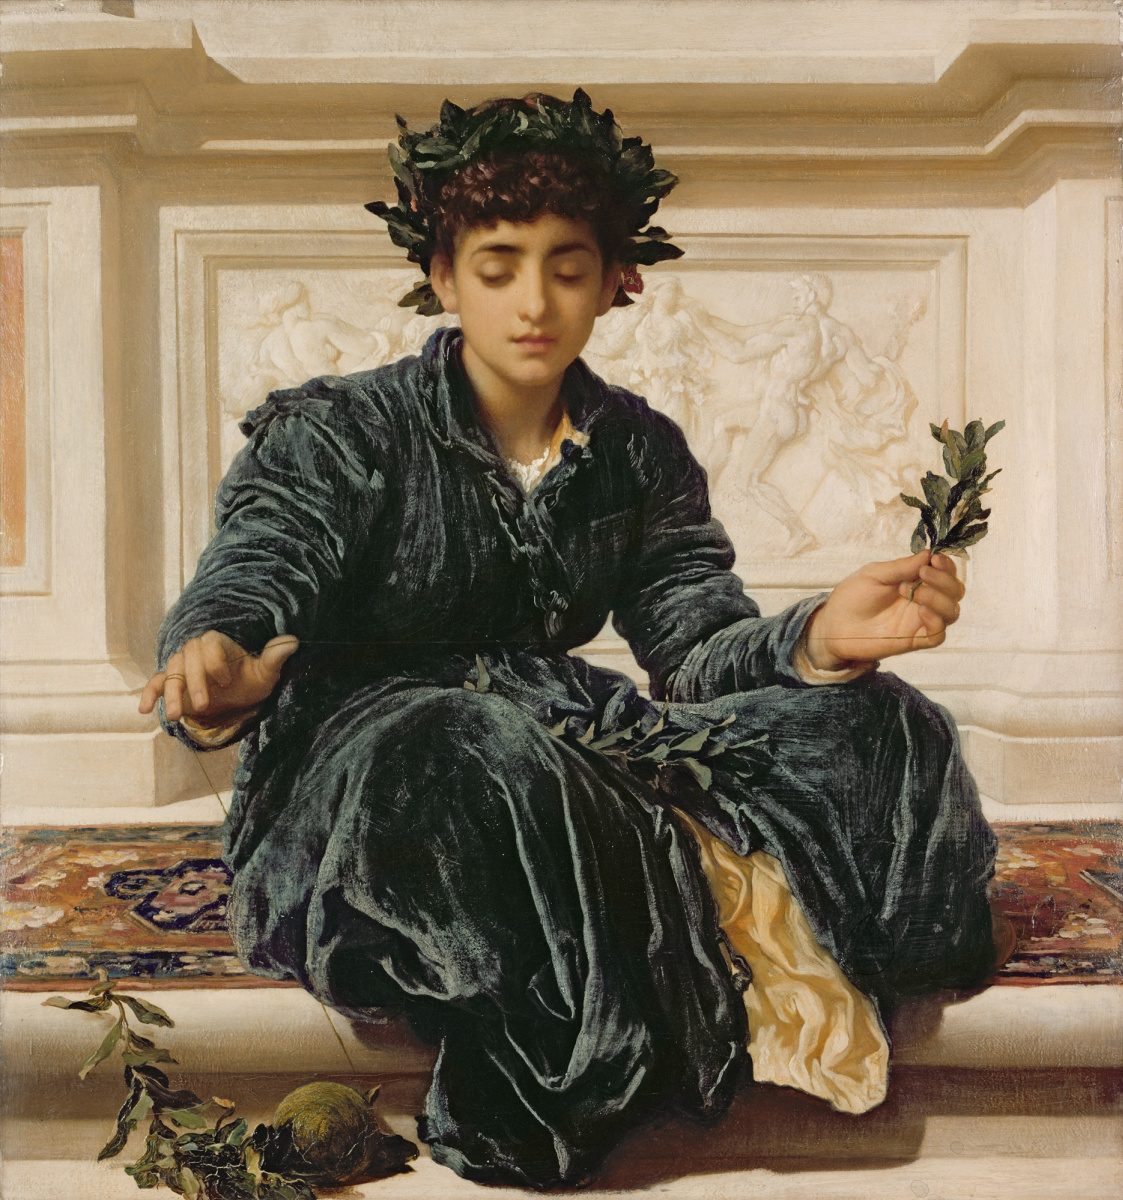 Frederic Leighton. Weaving the Wreath